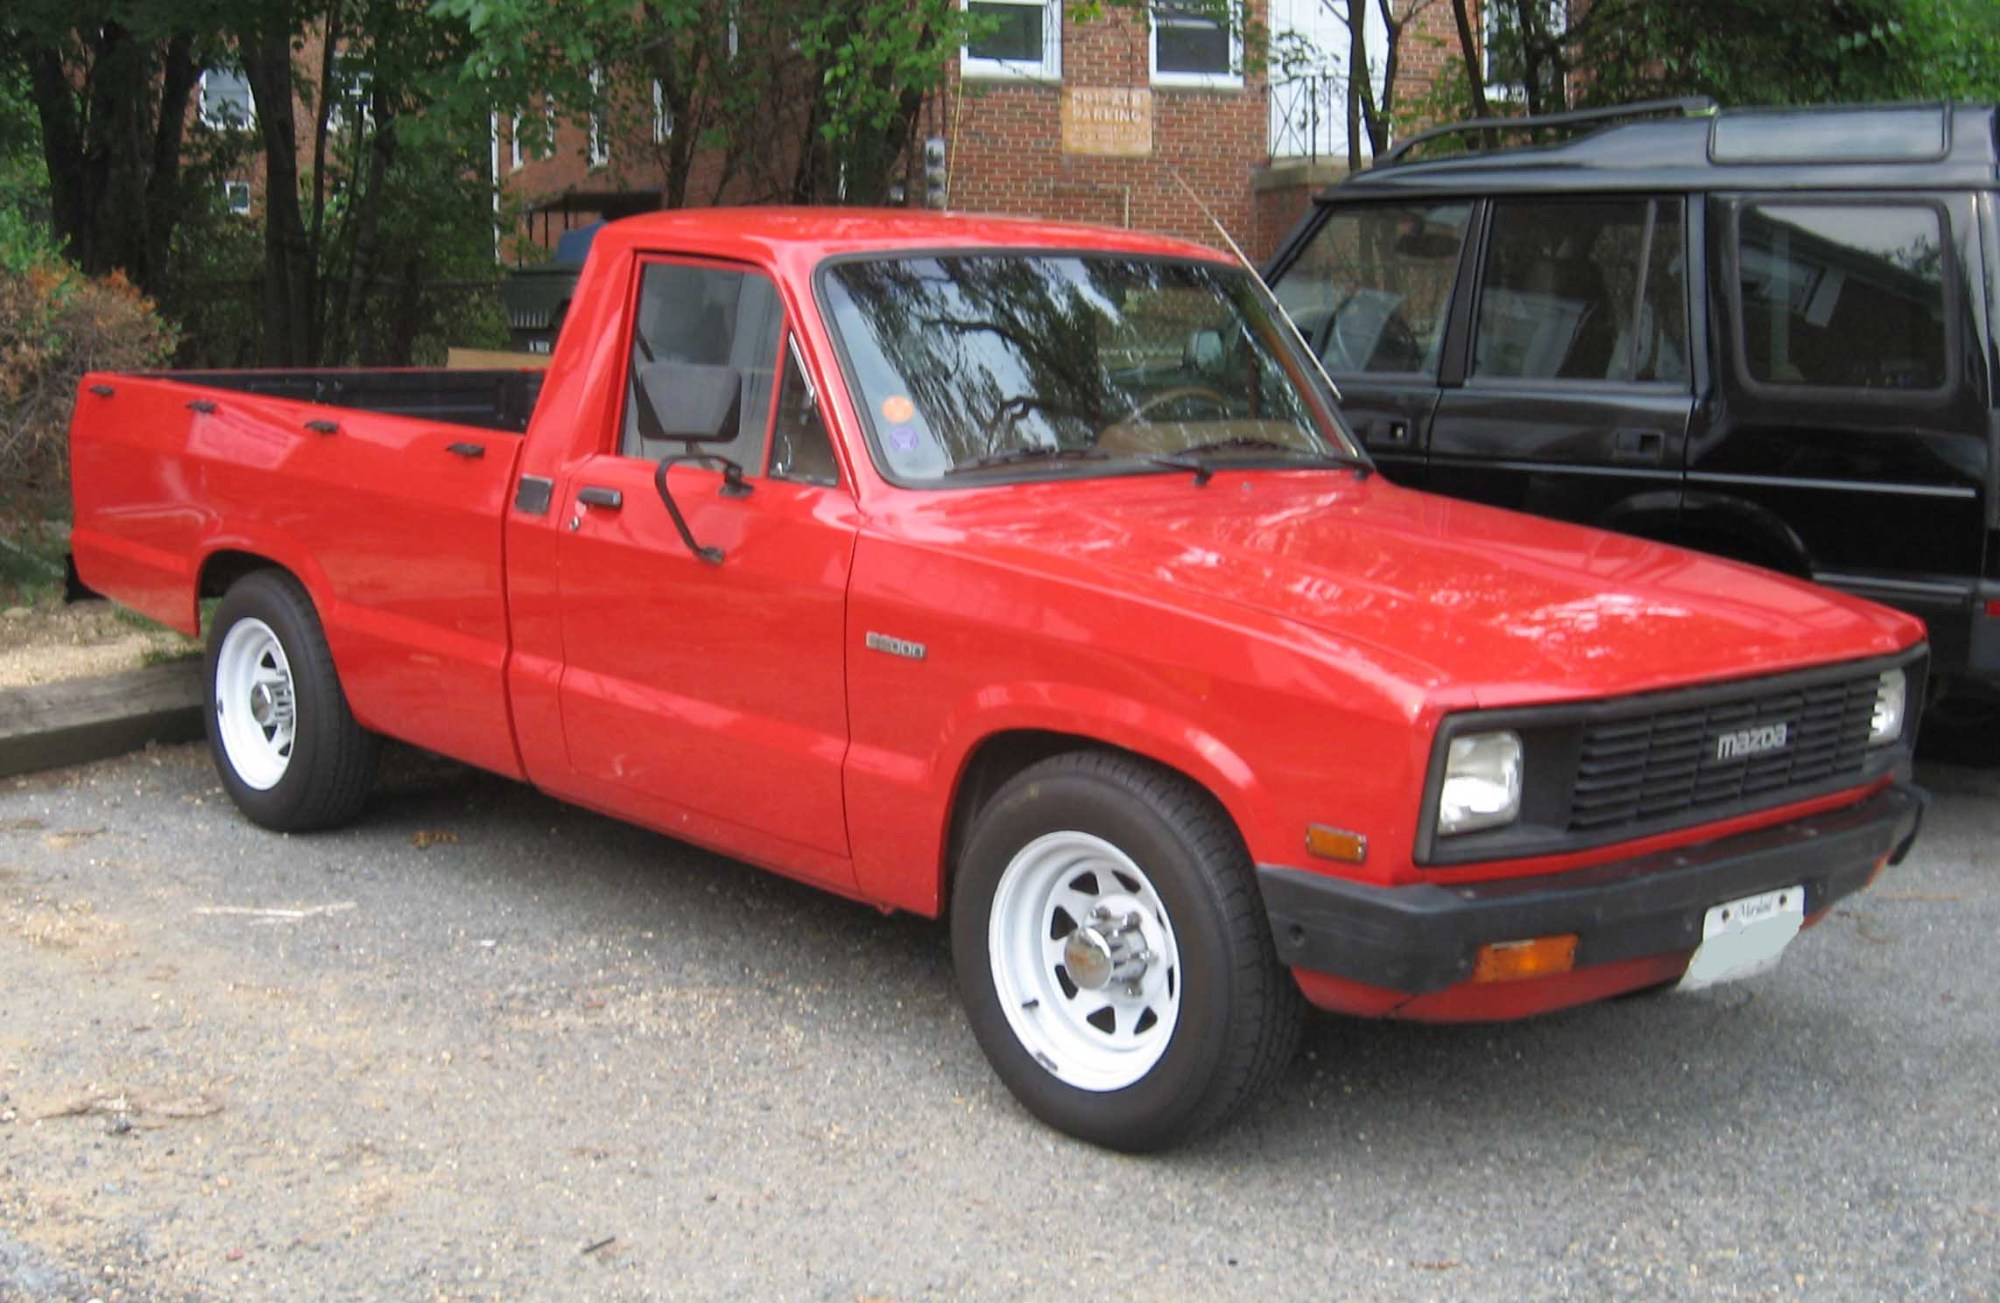 hight resolution of i plan on painting my 1982 mazda b2200 i would like to do the trim bed hooks bumpers wheels and smoke stack black and paint the body white sorta like